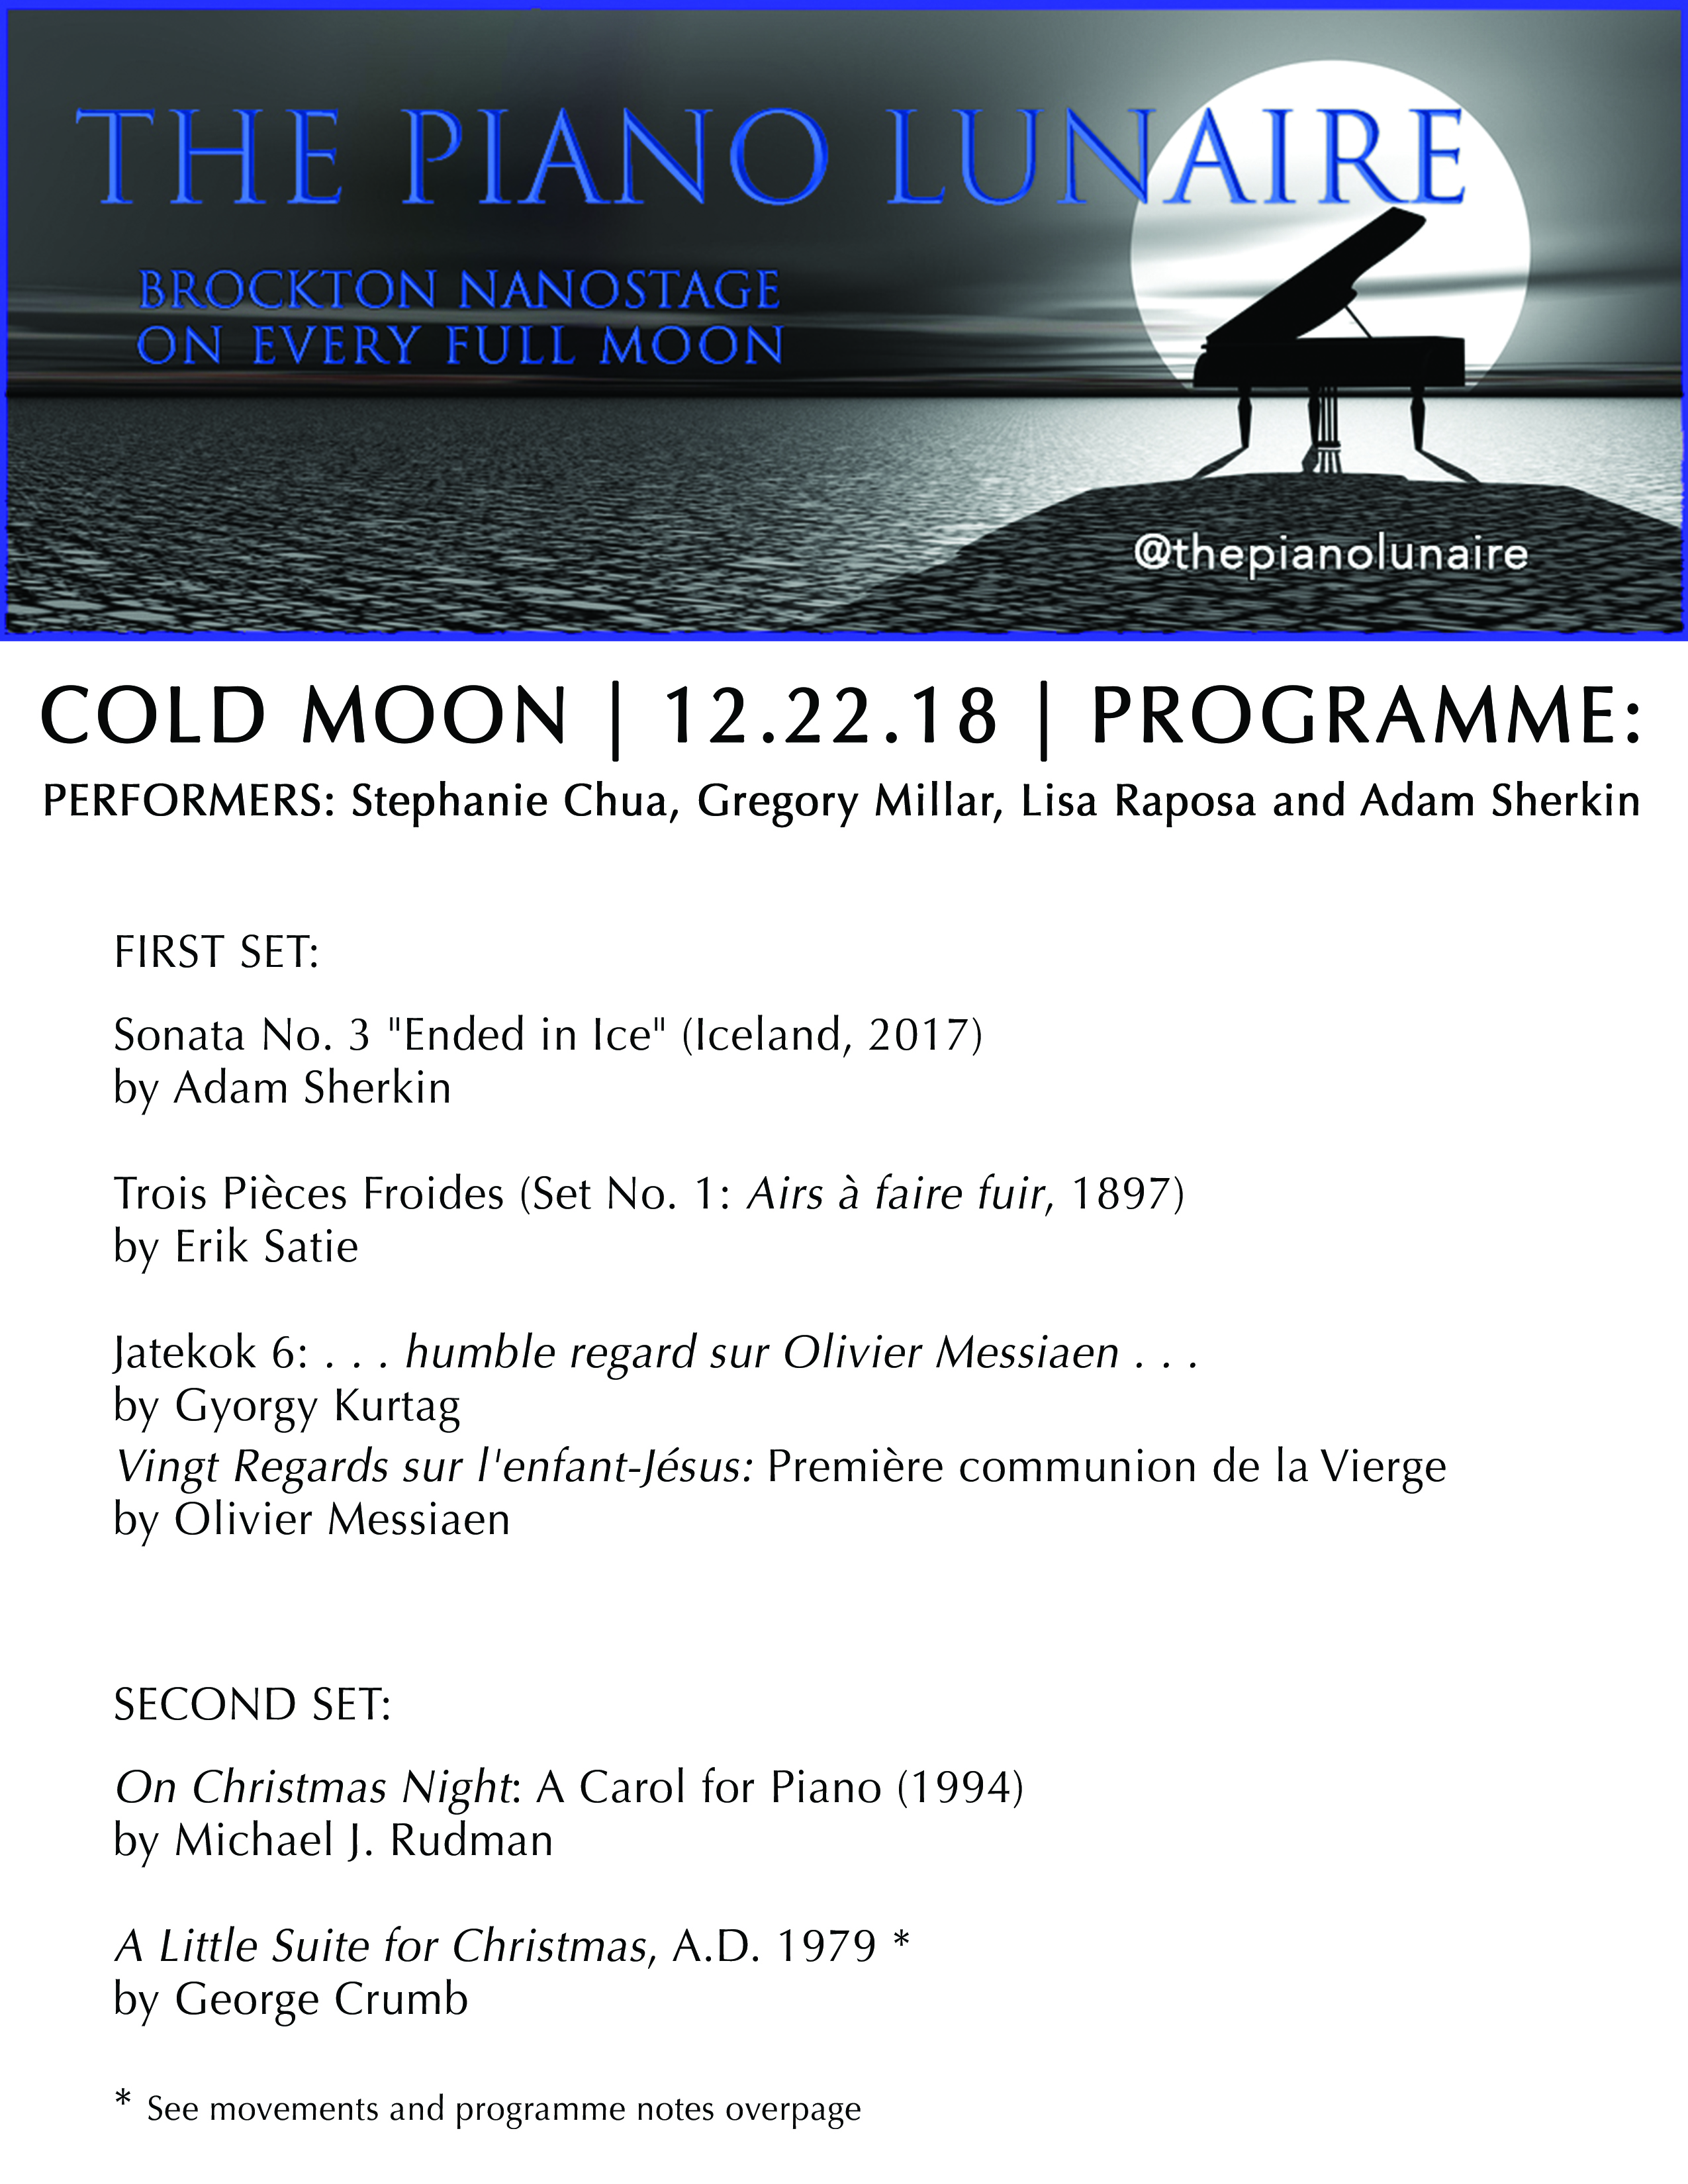 Piano Lunaire Cold Moon Programme COL. Page 1